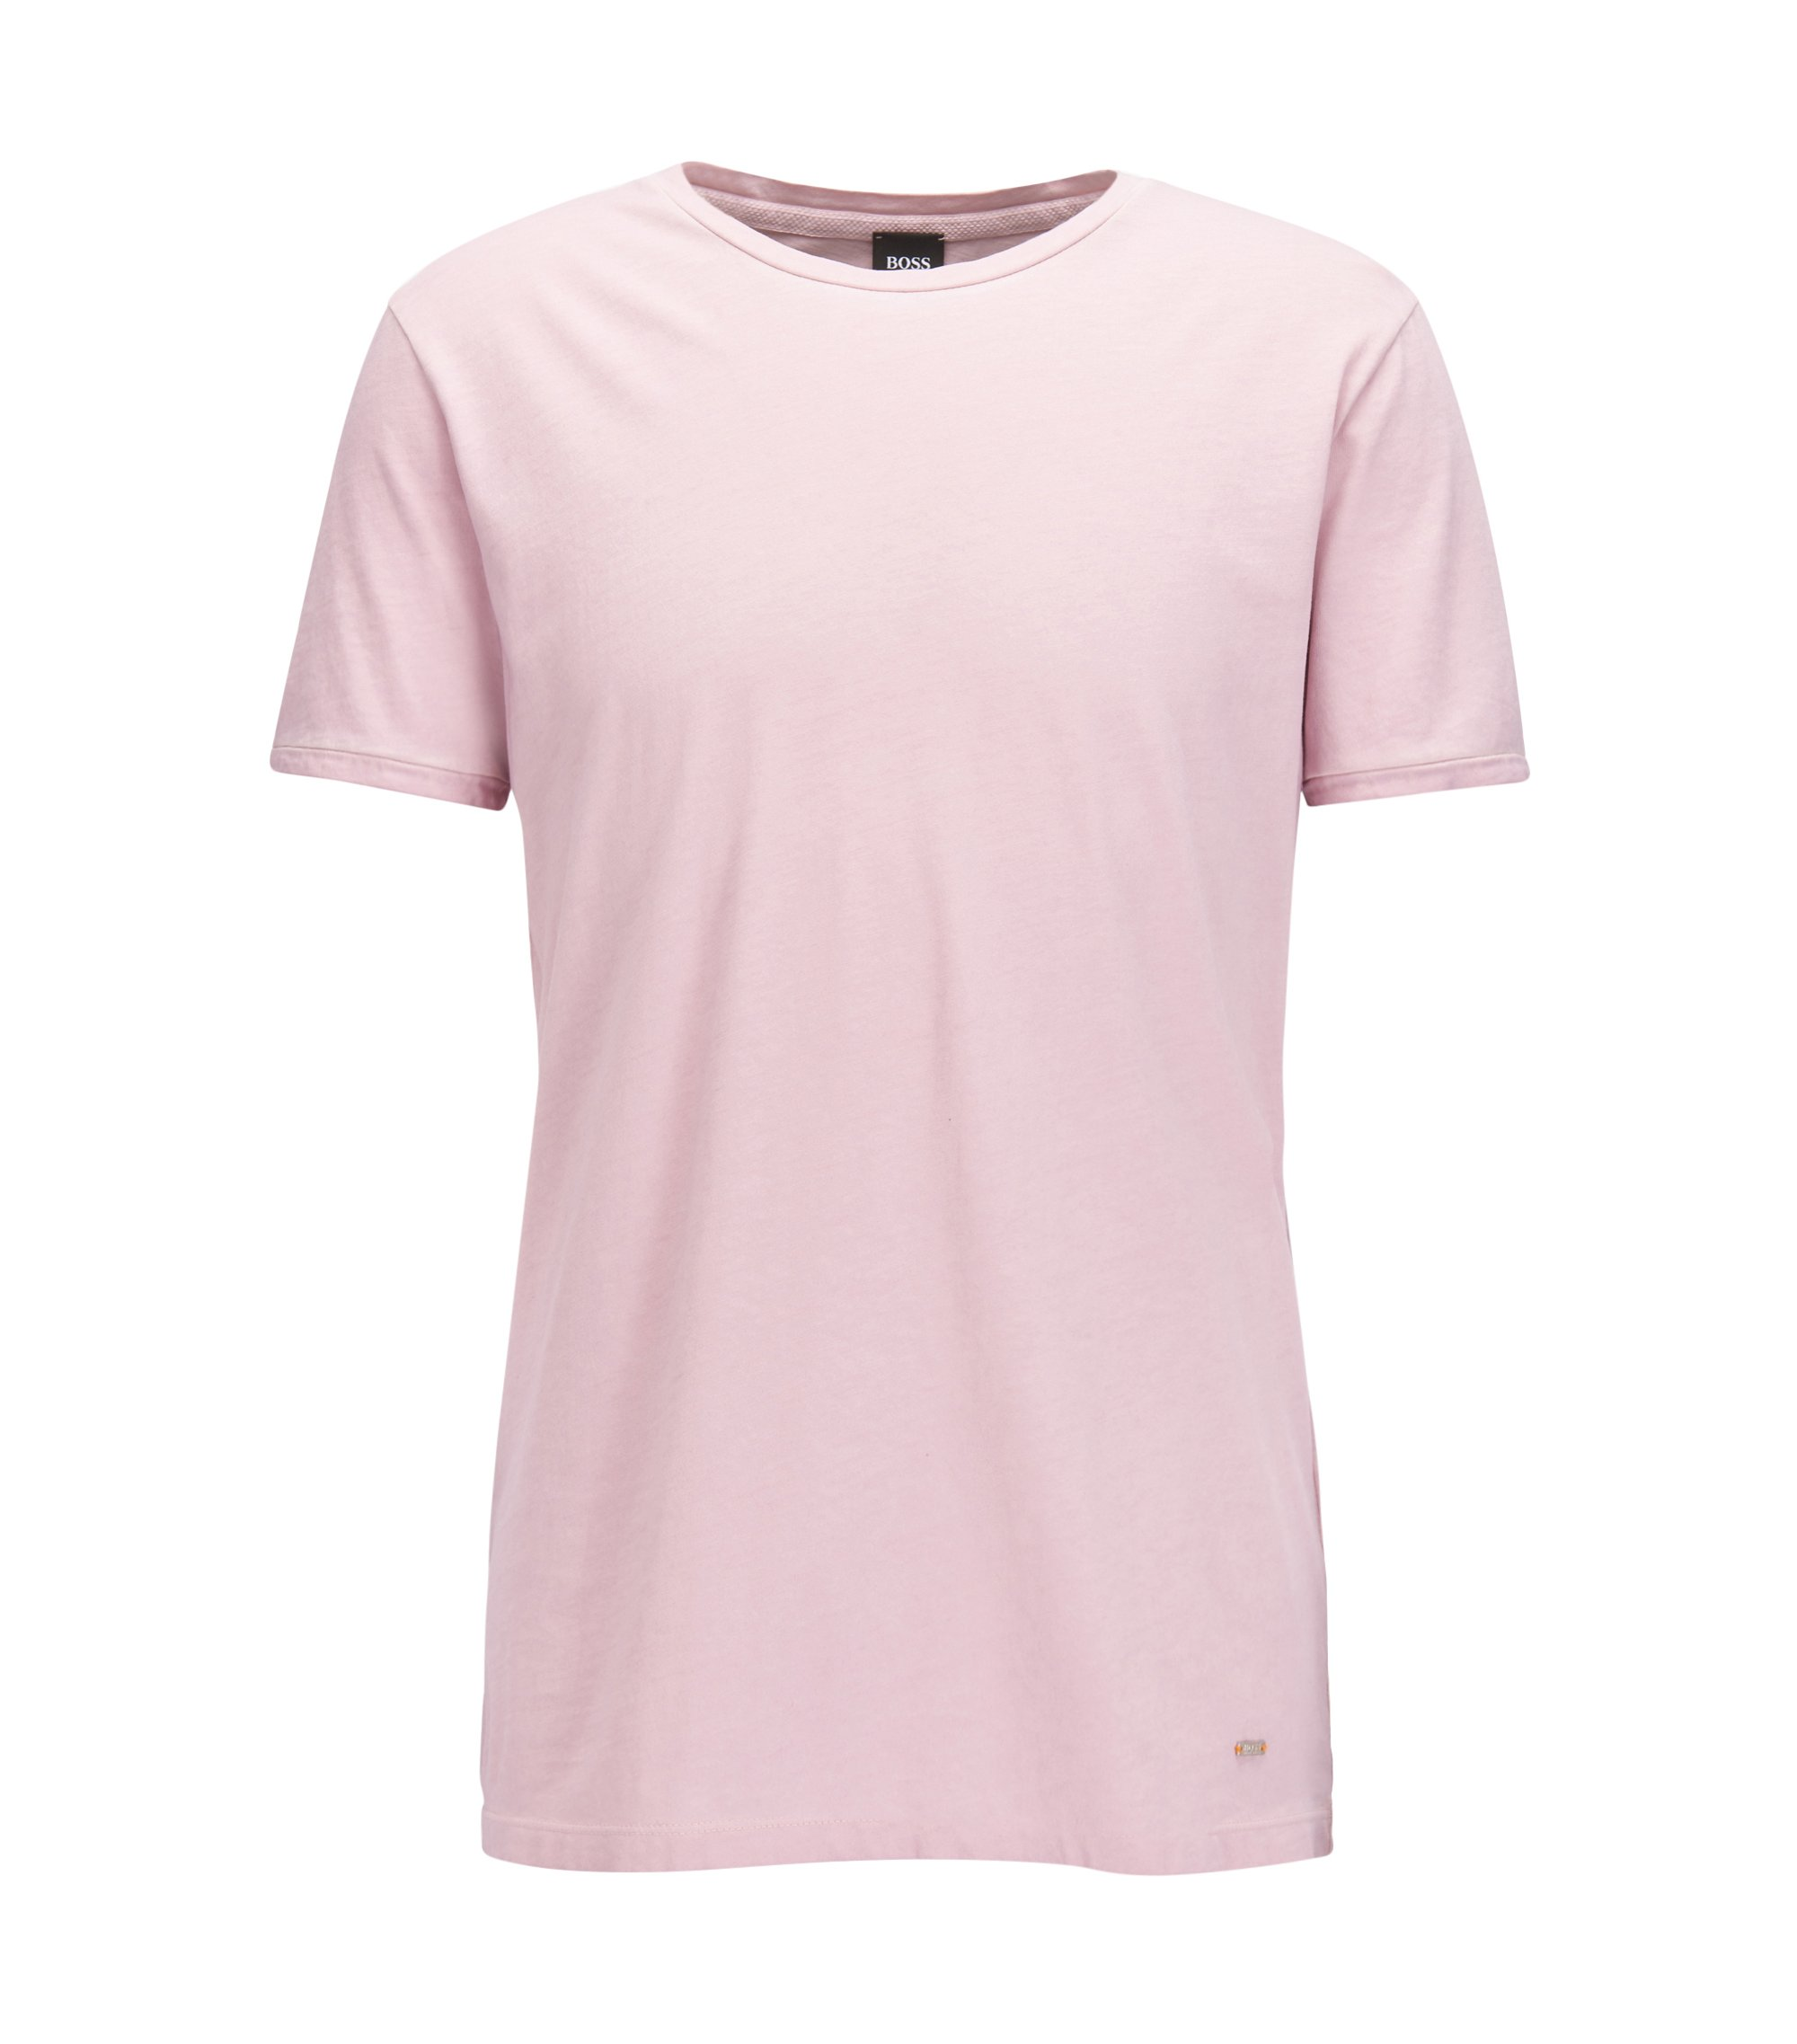 Regular-fit garment-dyed T-shirt in cotton, light pink